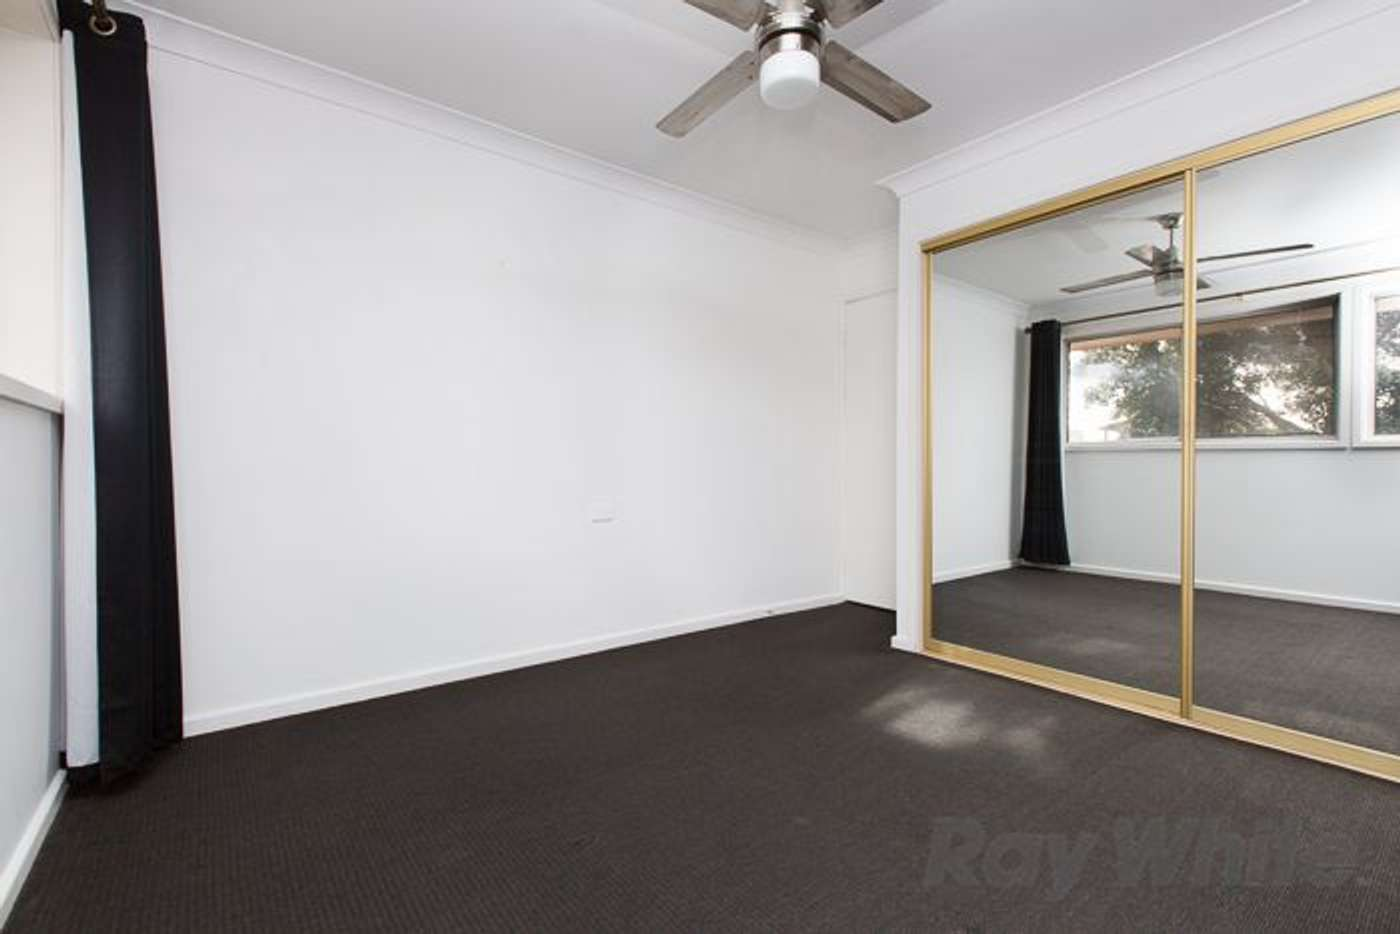 Sixth view of Homely townhouse listing, 6/191 Darby Street, Cooks Hill NSW 2300